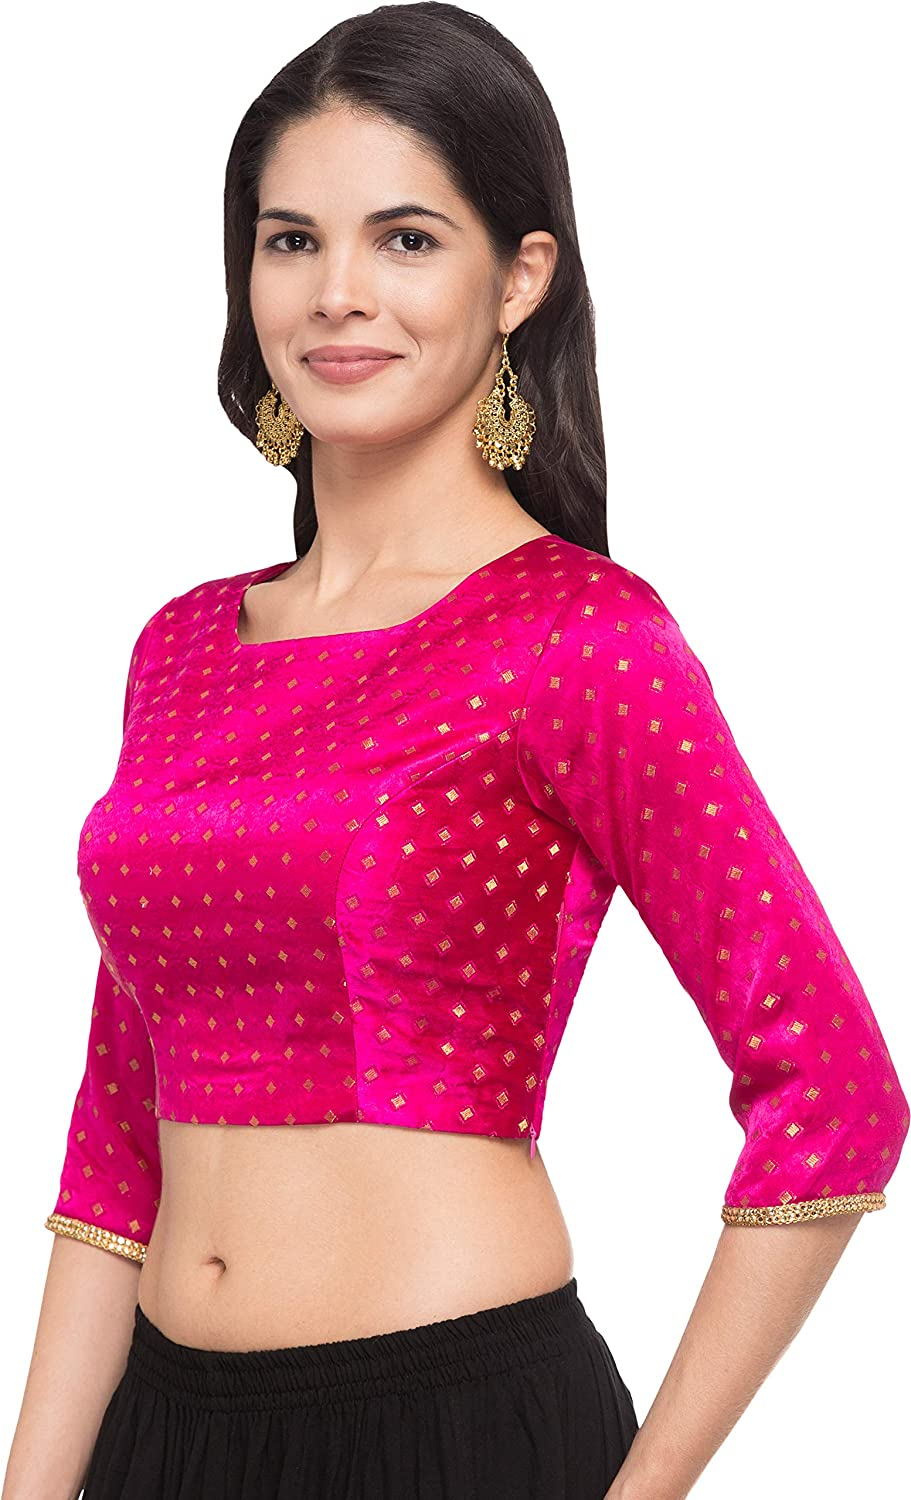 ea7c10d9d109aa Just B Women s Brocade and Georgette Dobby Print Design Round Neck  Readymade Blouse (Pink